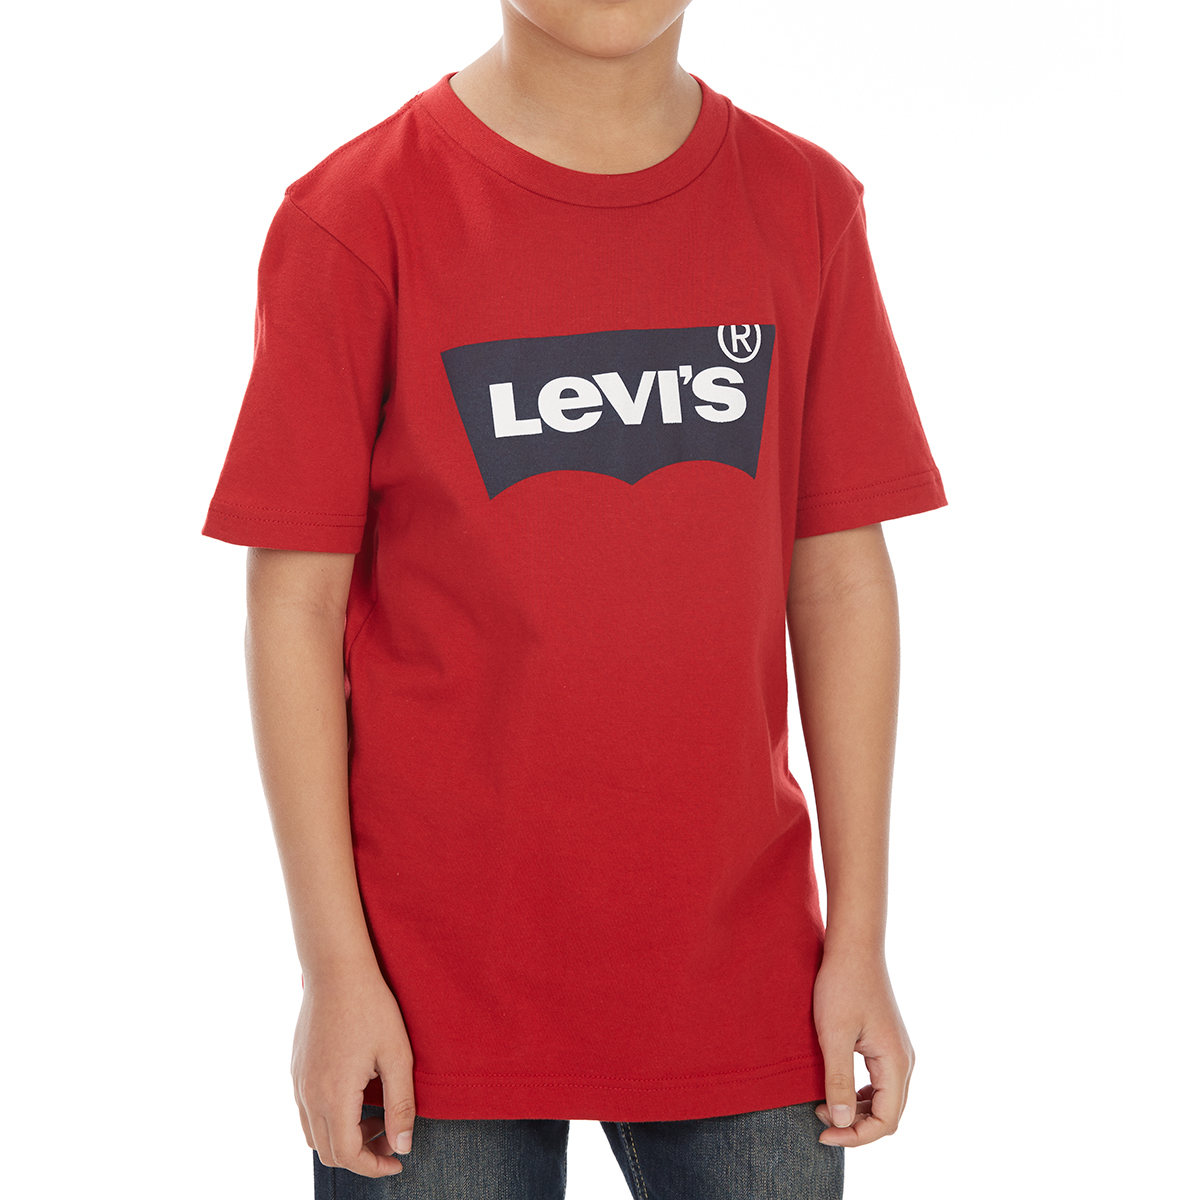 Levi's Big Boys' Batwing Short-Sleeve Tee - Red, M